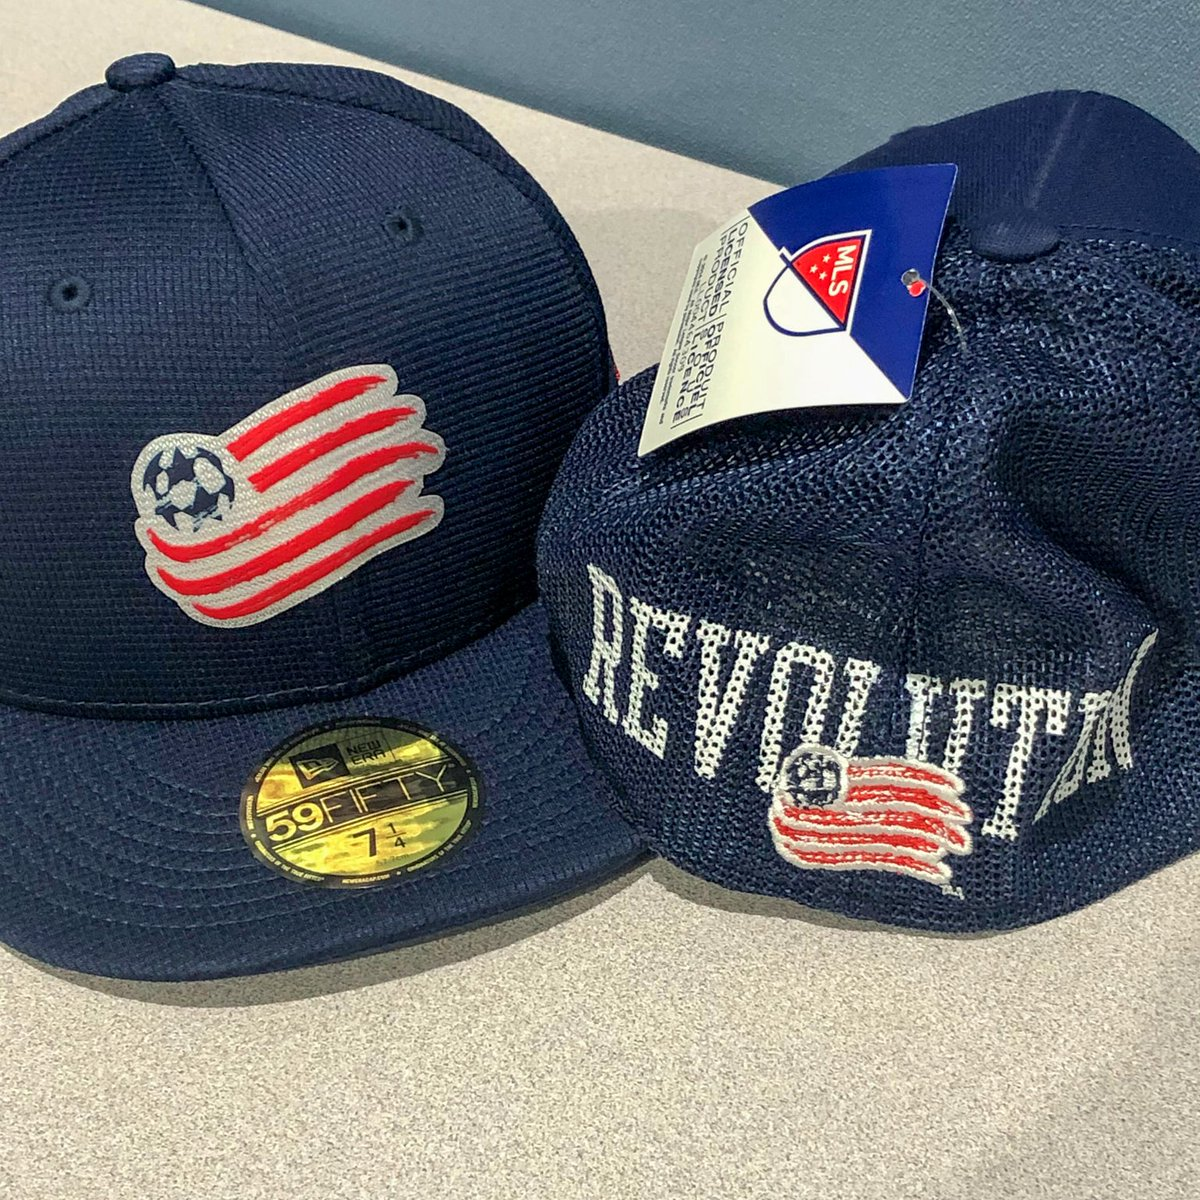 It's #NationalHatDay 🧢  We're giving a few away. Follow and RT this tweet to be entered to win.  Rules: